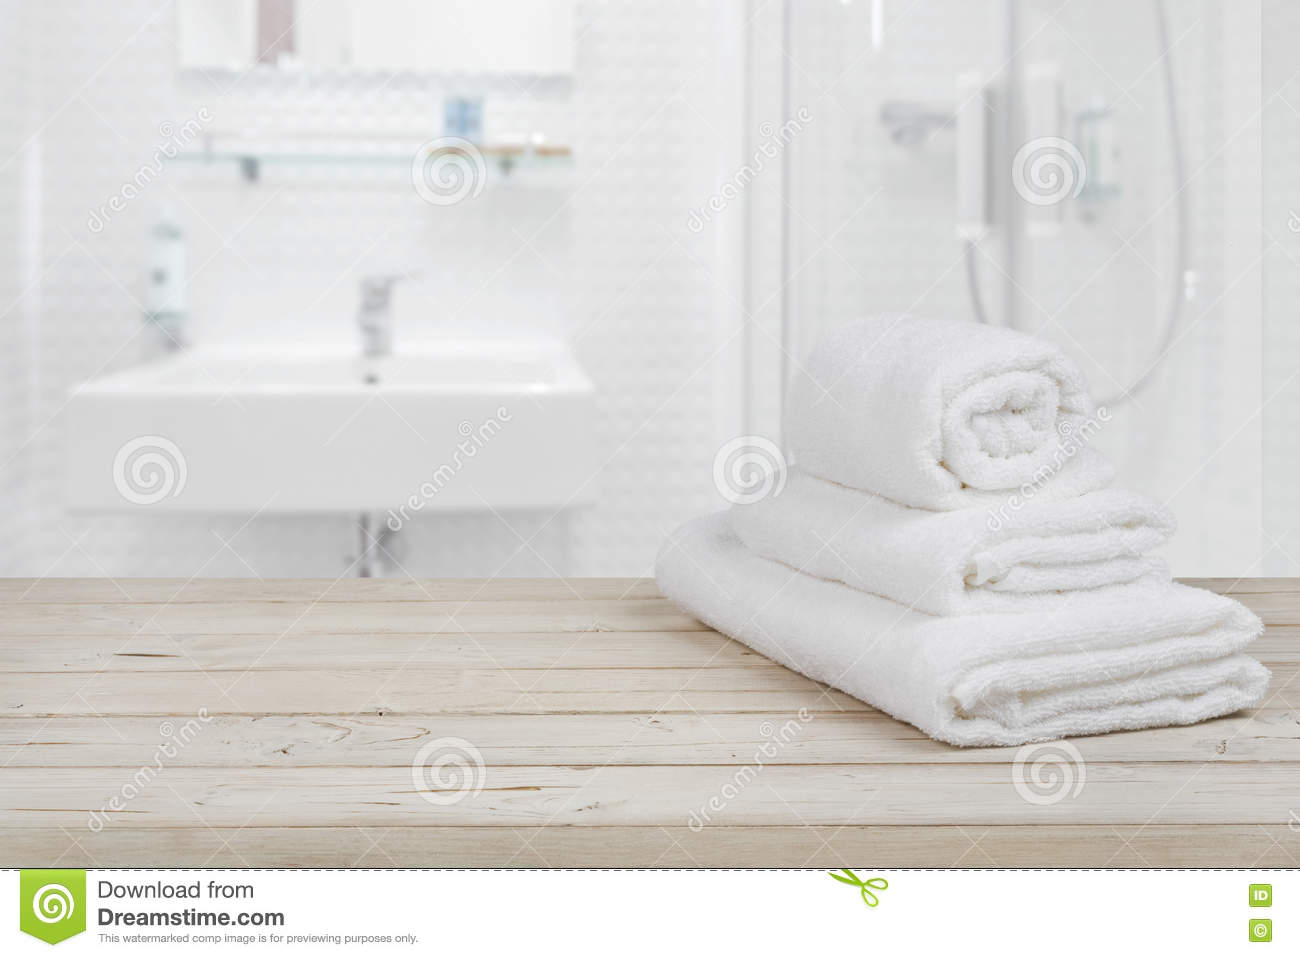 Blurred Bathroom Interior Background And White Spa Towels On Wood Stock Photo Image Of Modern